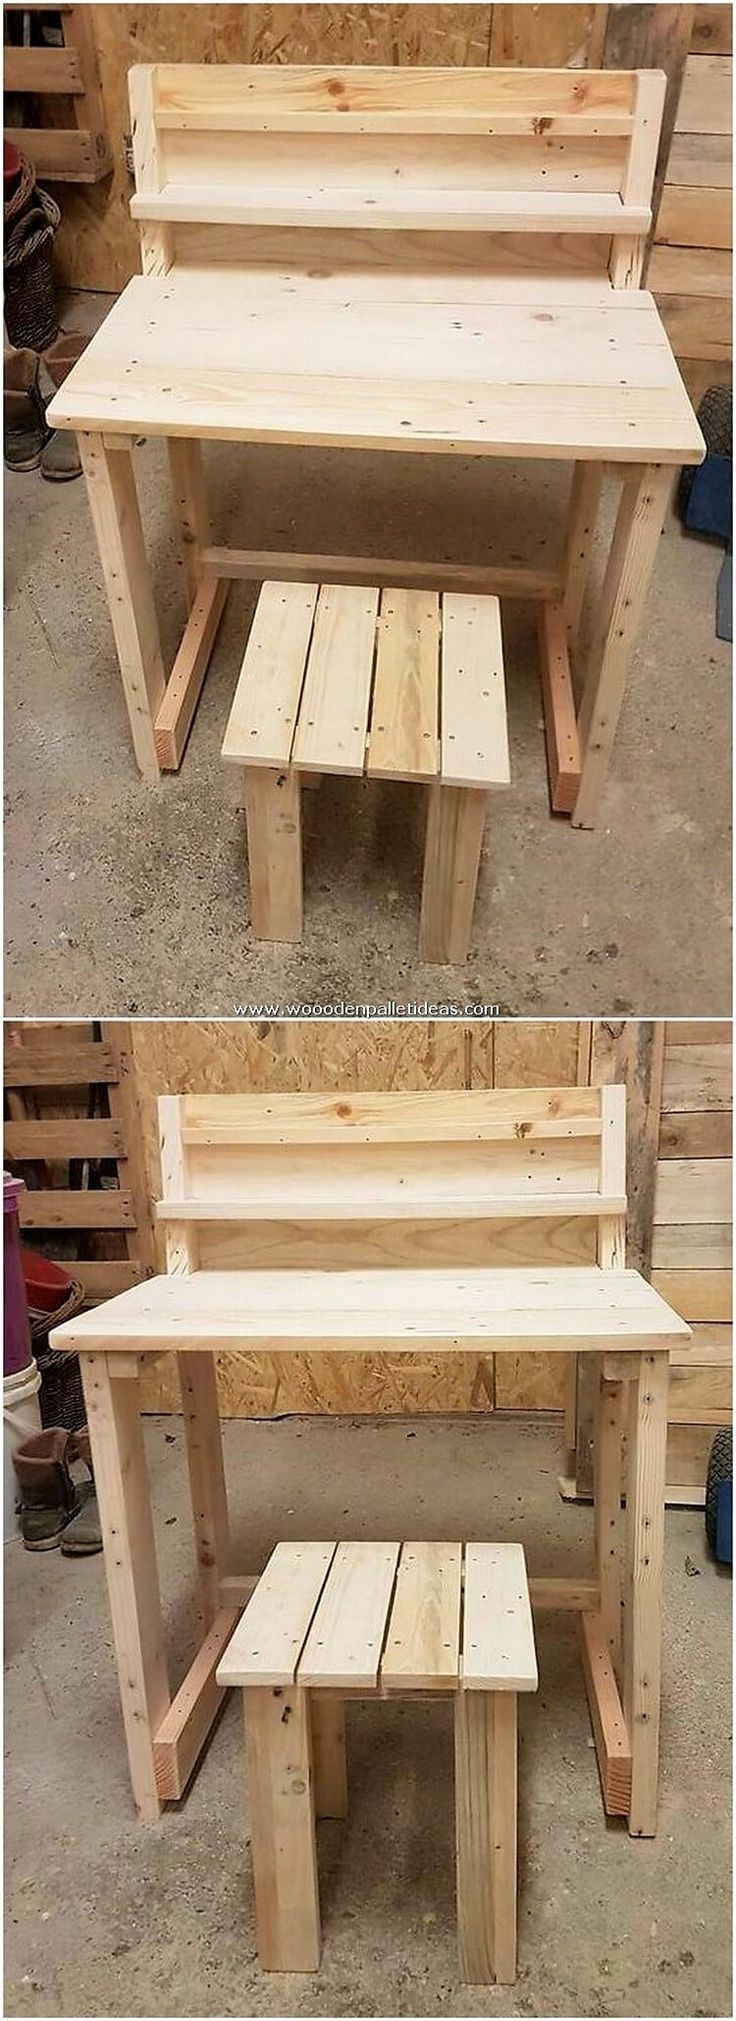 Old Pallets Simple Pallets Pallets Simple Wood Pallets Pallet Desk Wood Pallet Art